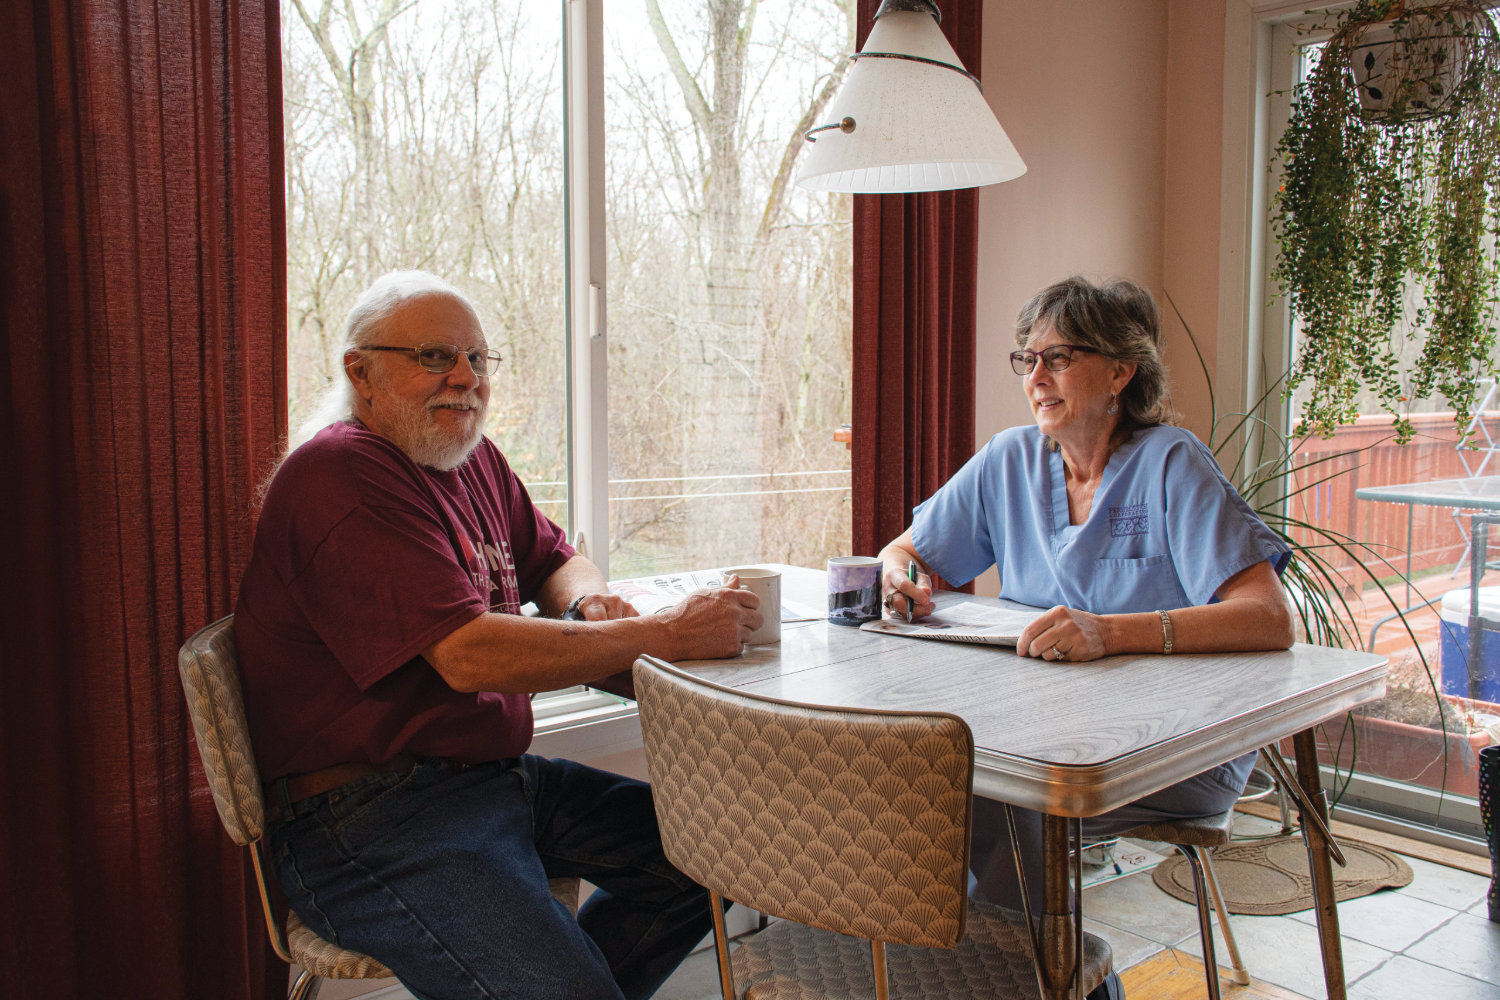 Marc McGiveney '92 and Deb Harbin '92 sitting at their kitchen table